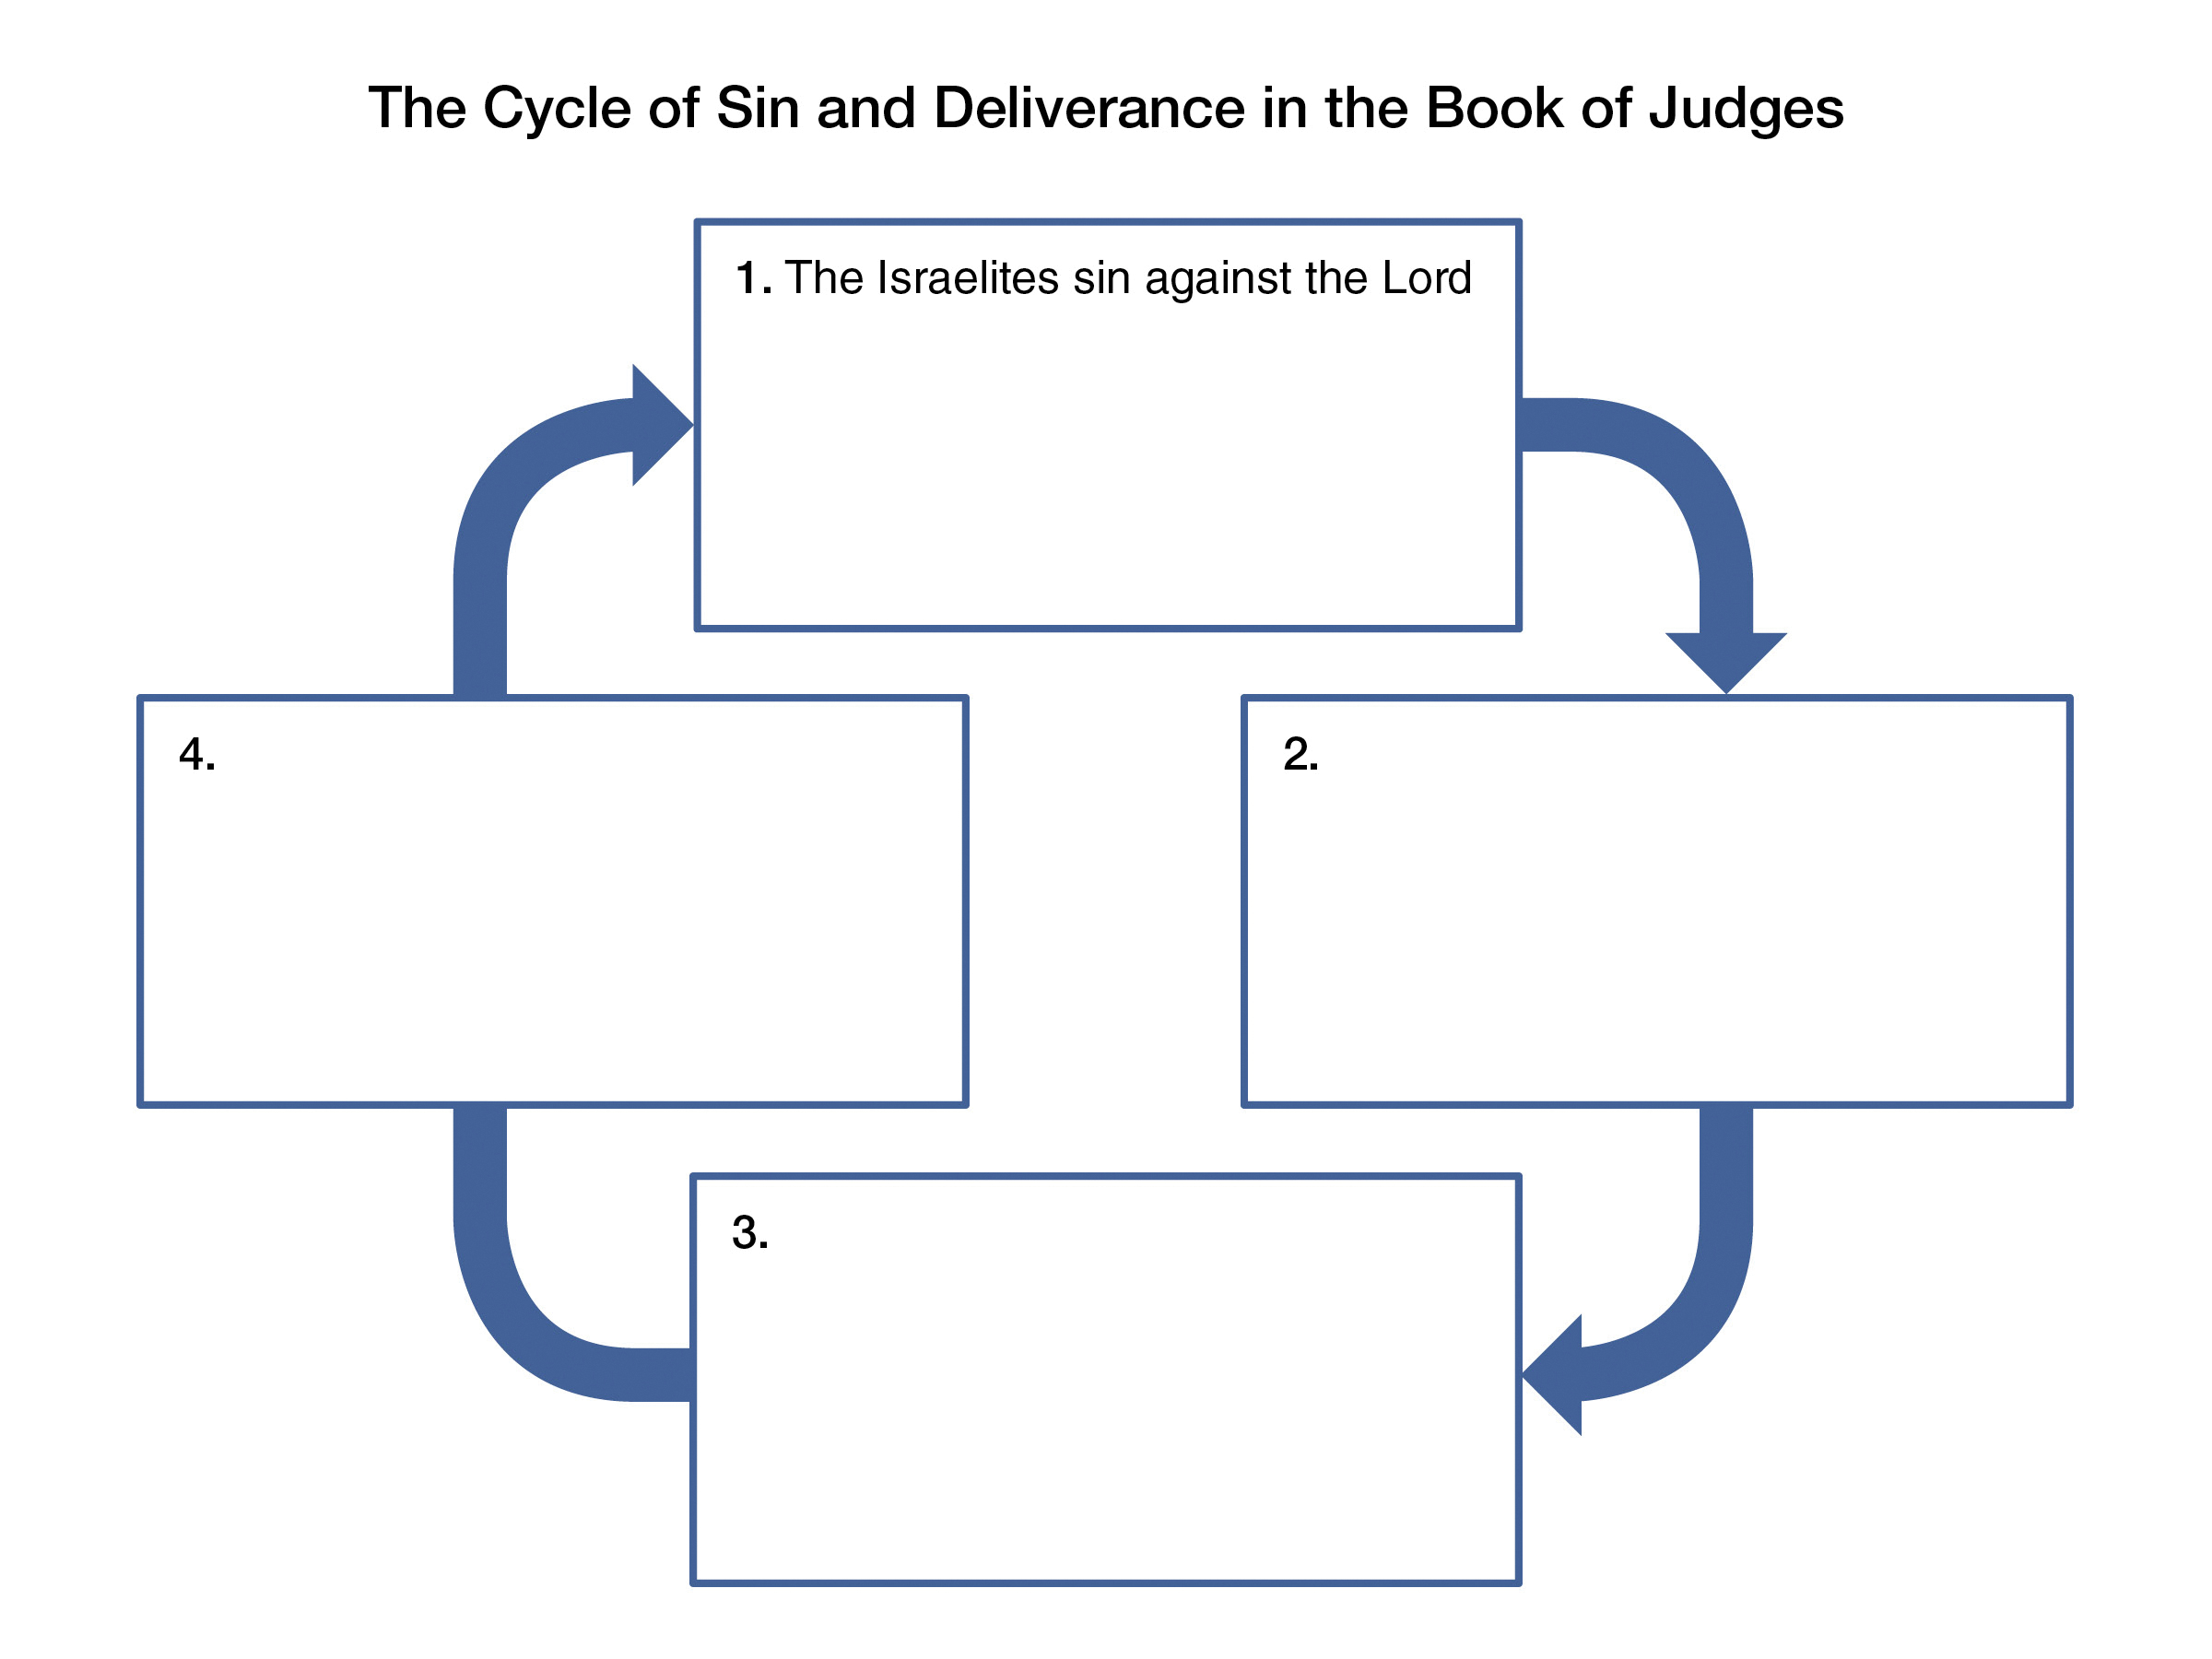 A diagram showing the cycle of sin and deliverance as outlined in the book of Judges.